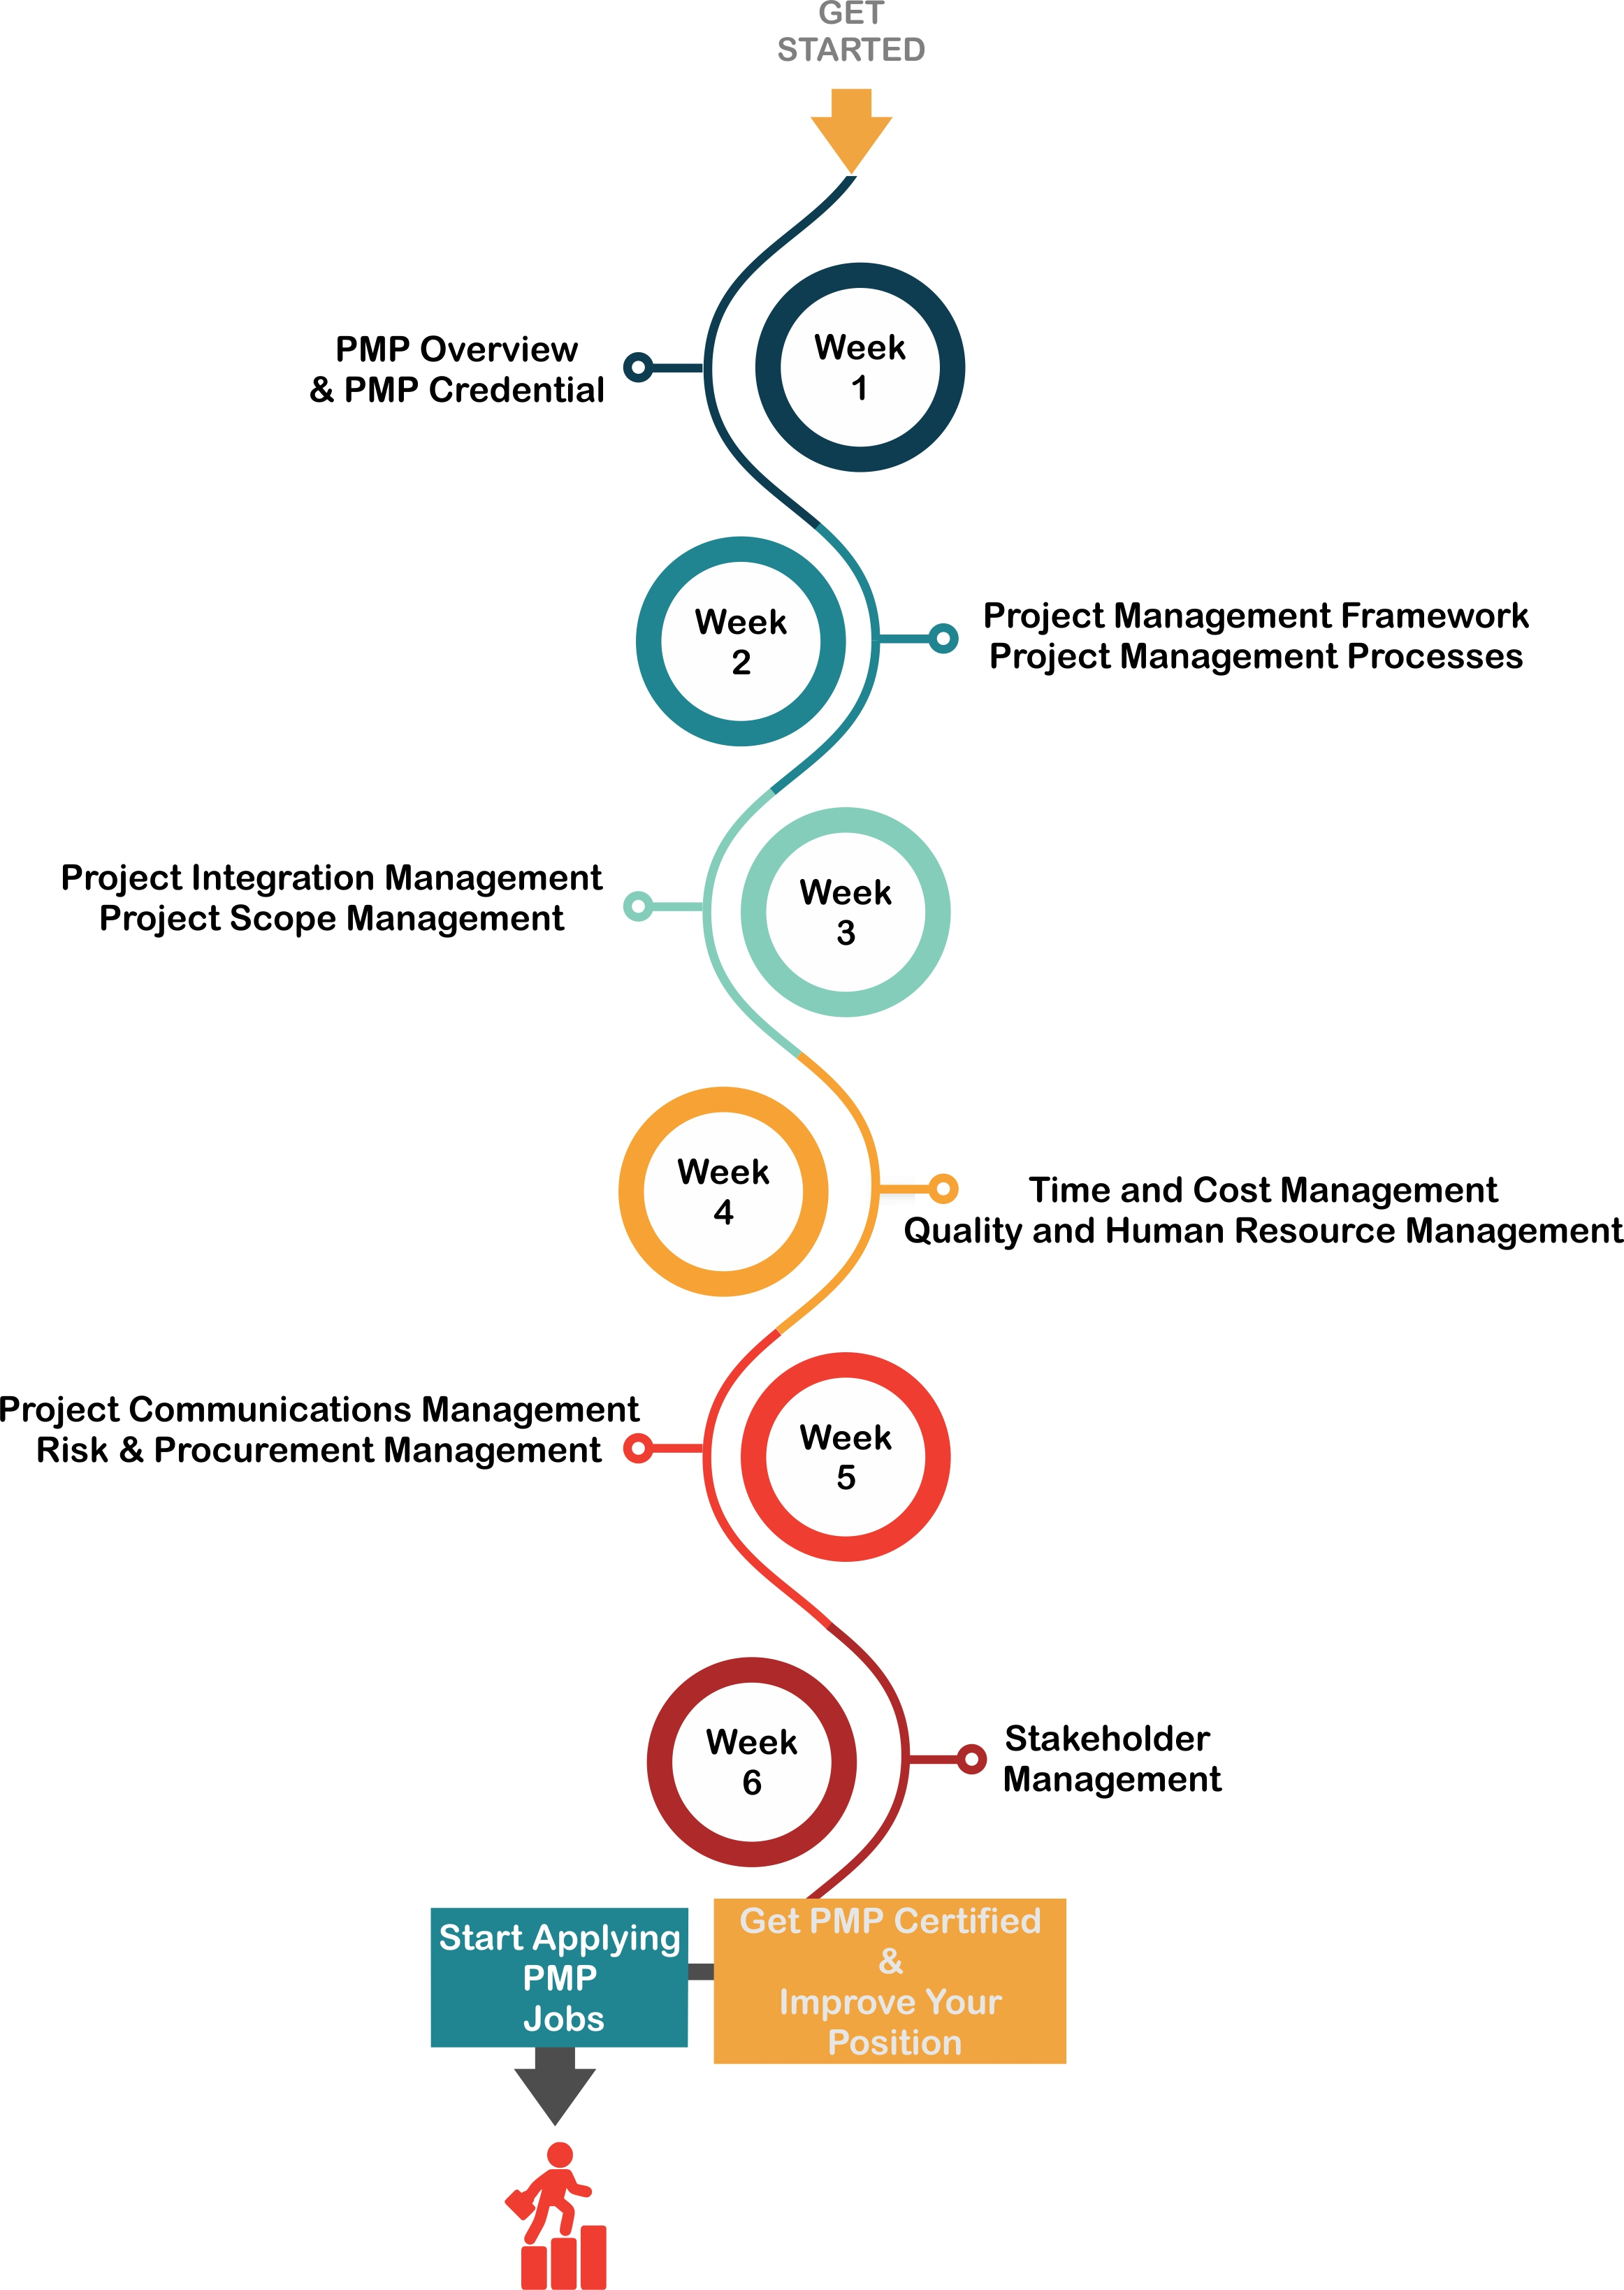 Project Management Professional (PMP) Training and Certification